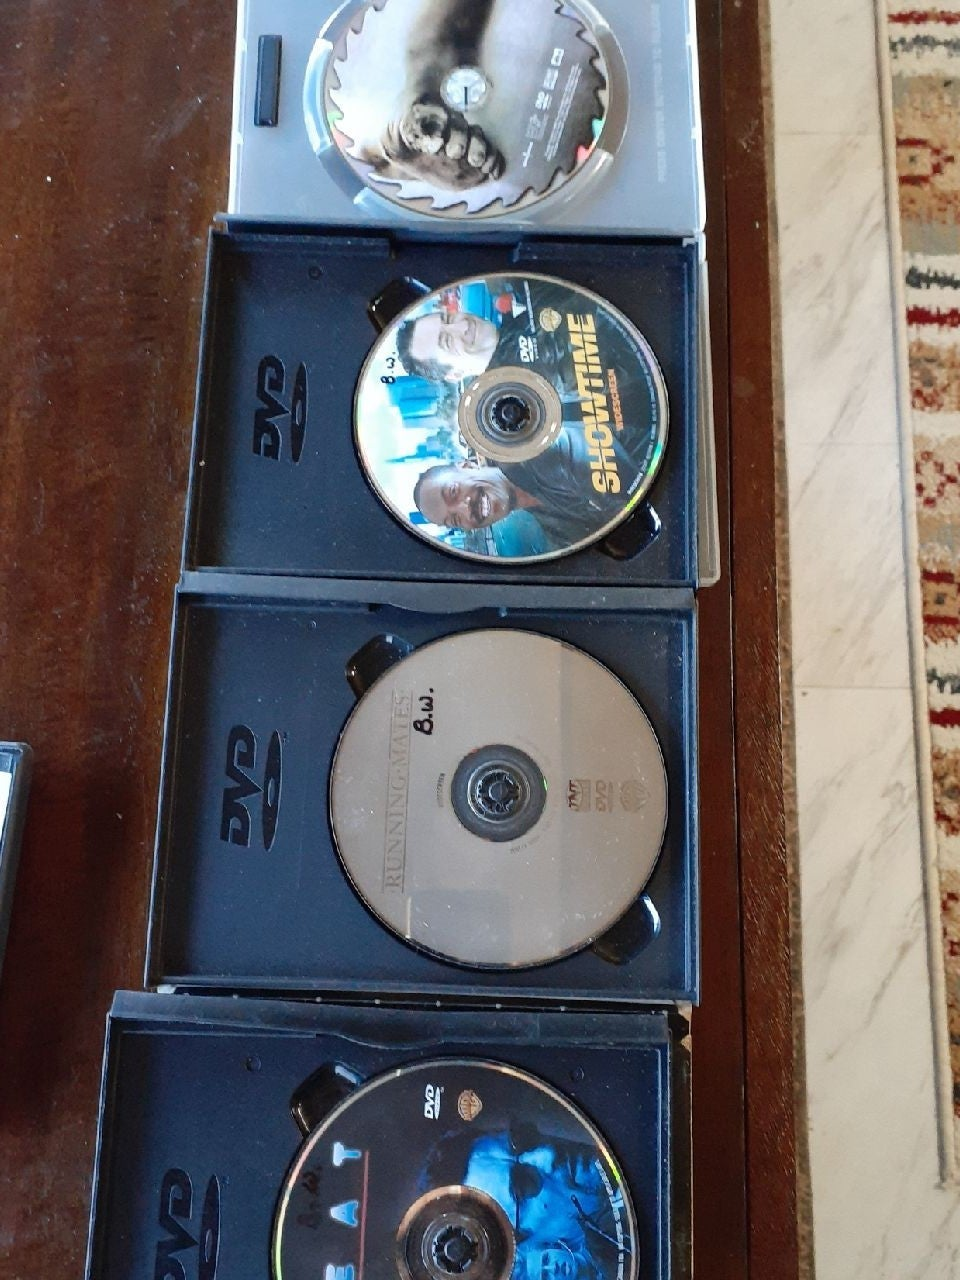 Saw, showtime and two other dvd movies